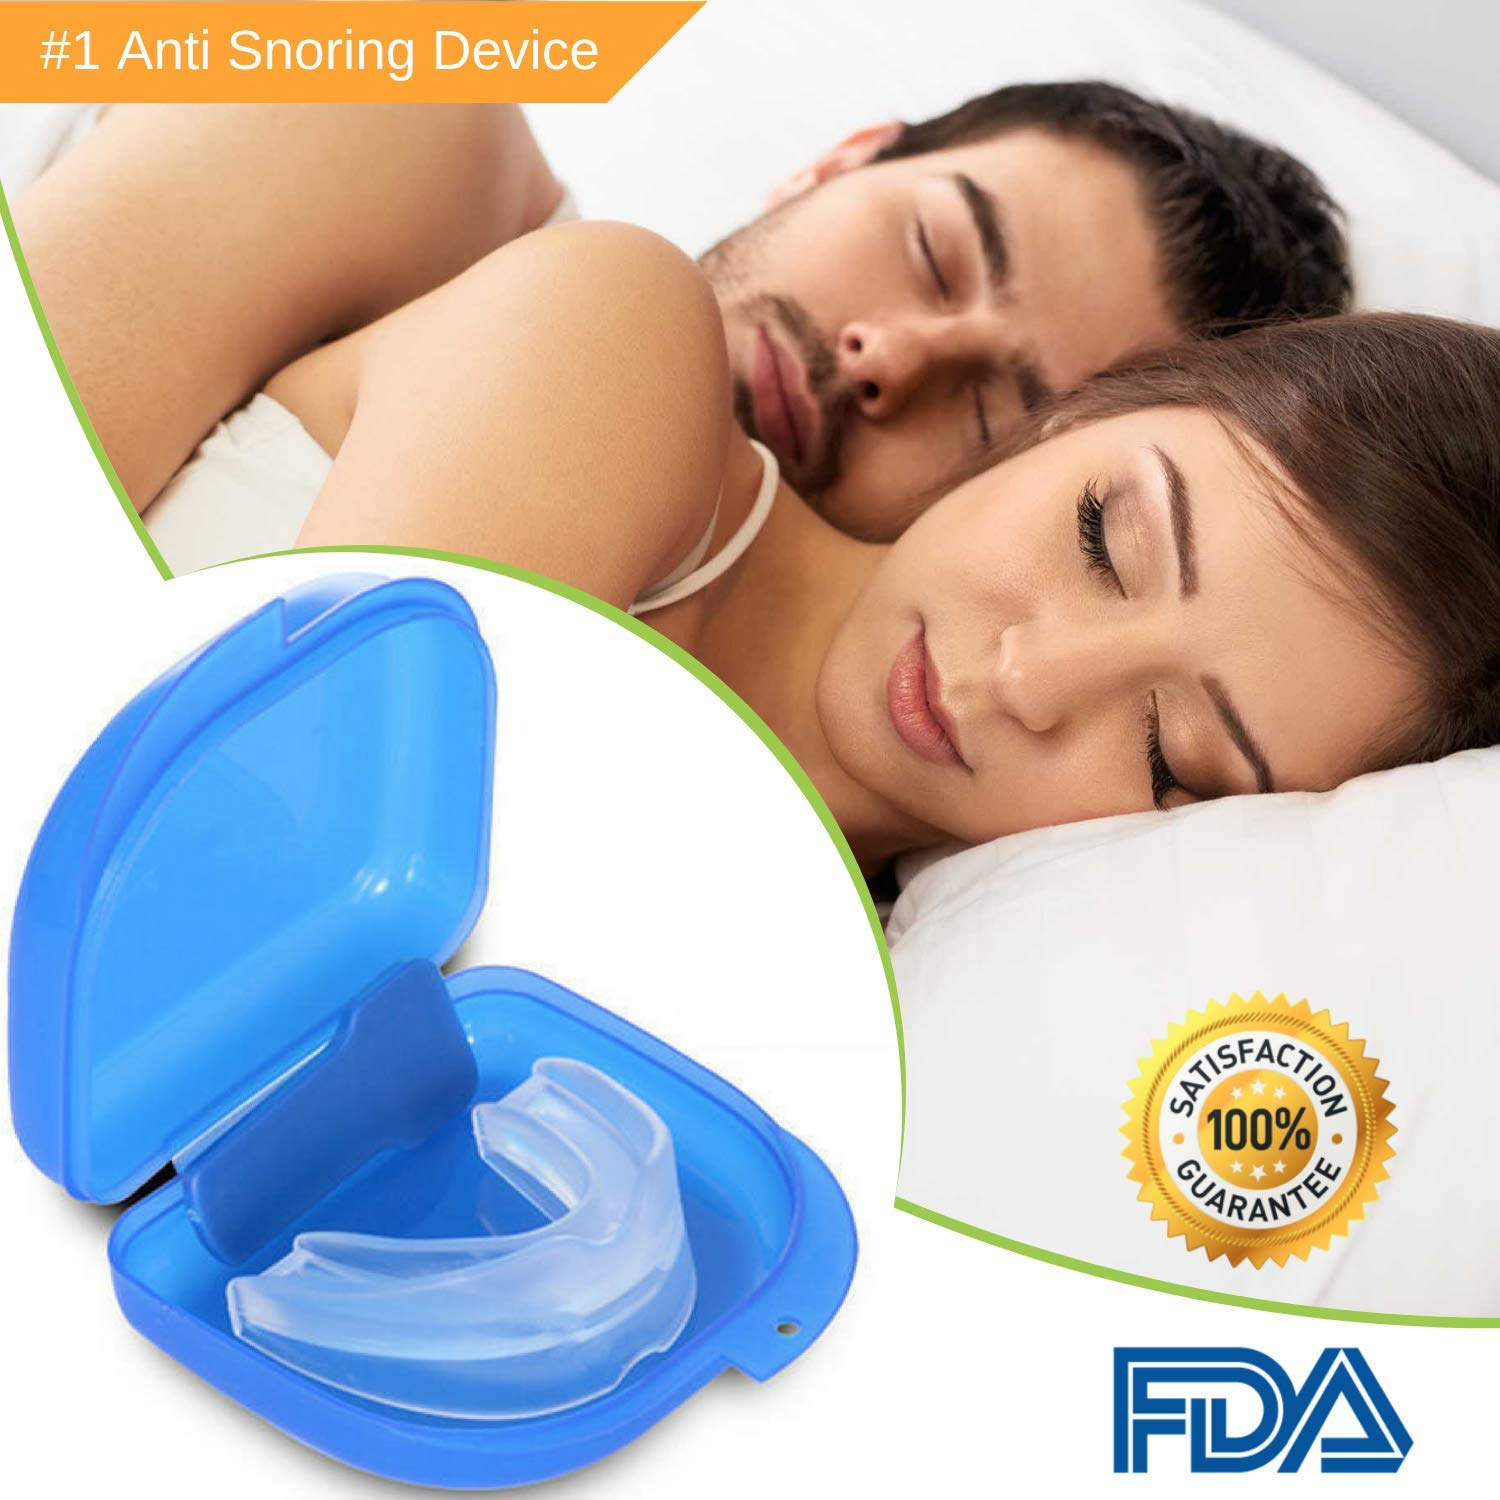 Anti Snoring Device - Snoring Solution, Stop Snoring Mouthpiece - Sleep Aid Night Mouth Guard Snore Stopper - Dental Guard for Teeth Grinding, Bruxism and Comfortable Natural Sleep